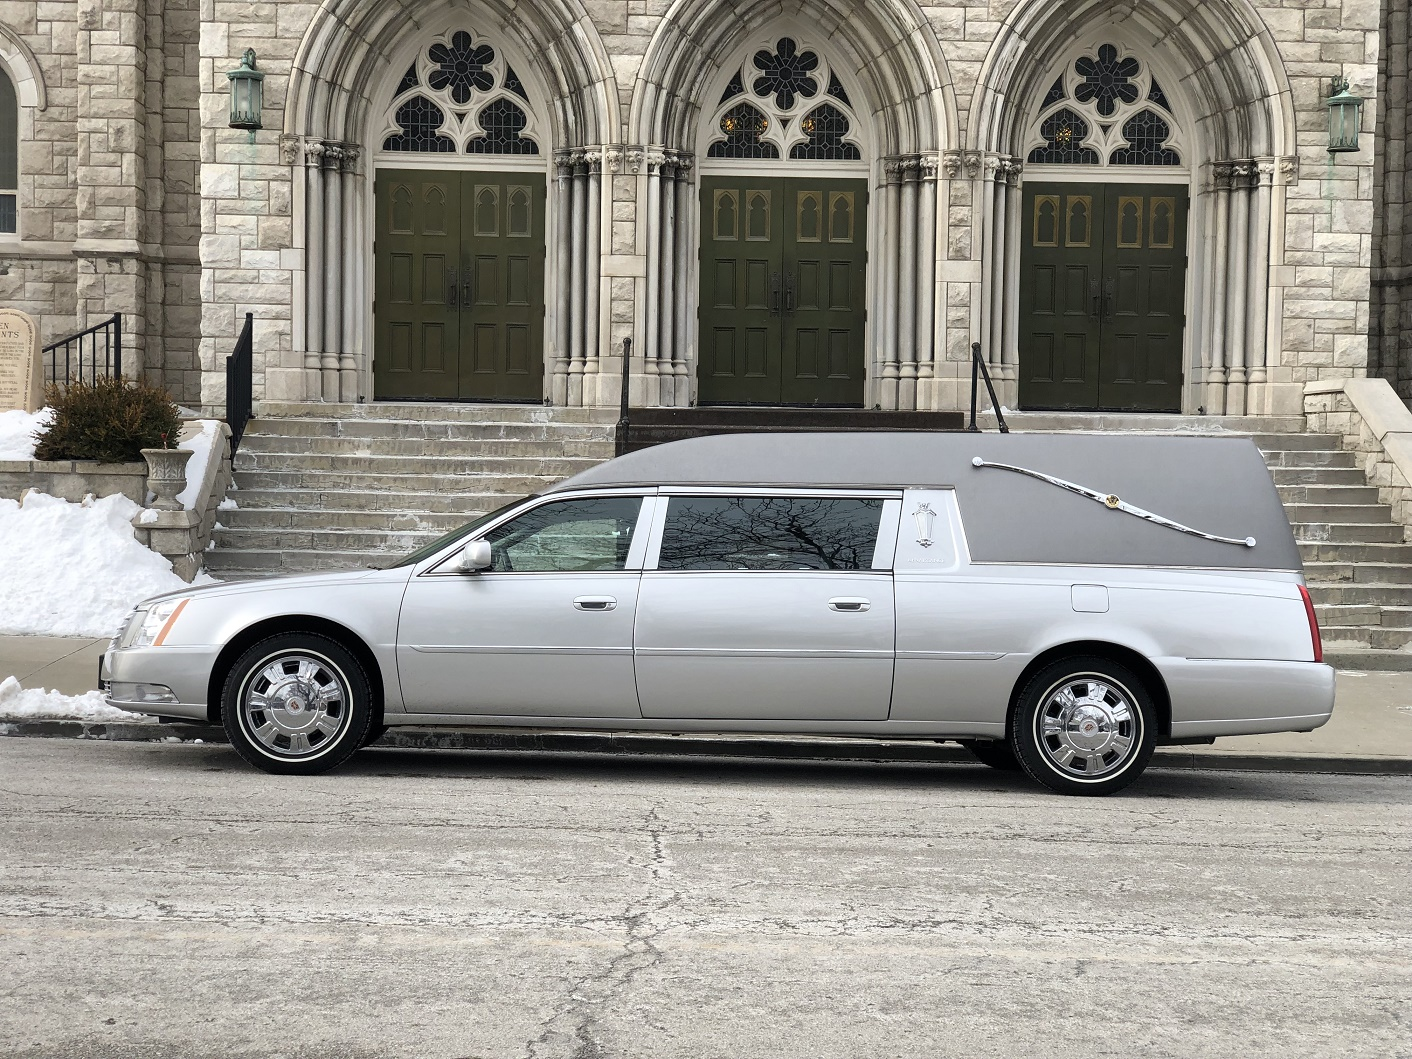 2010 Silver Federal Heritage Funeral Hearse for sale 1